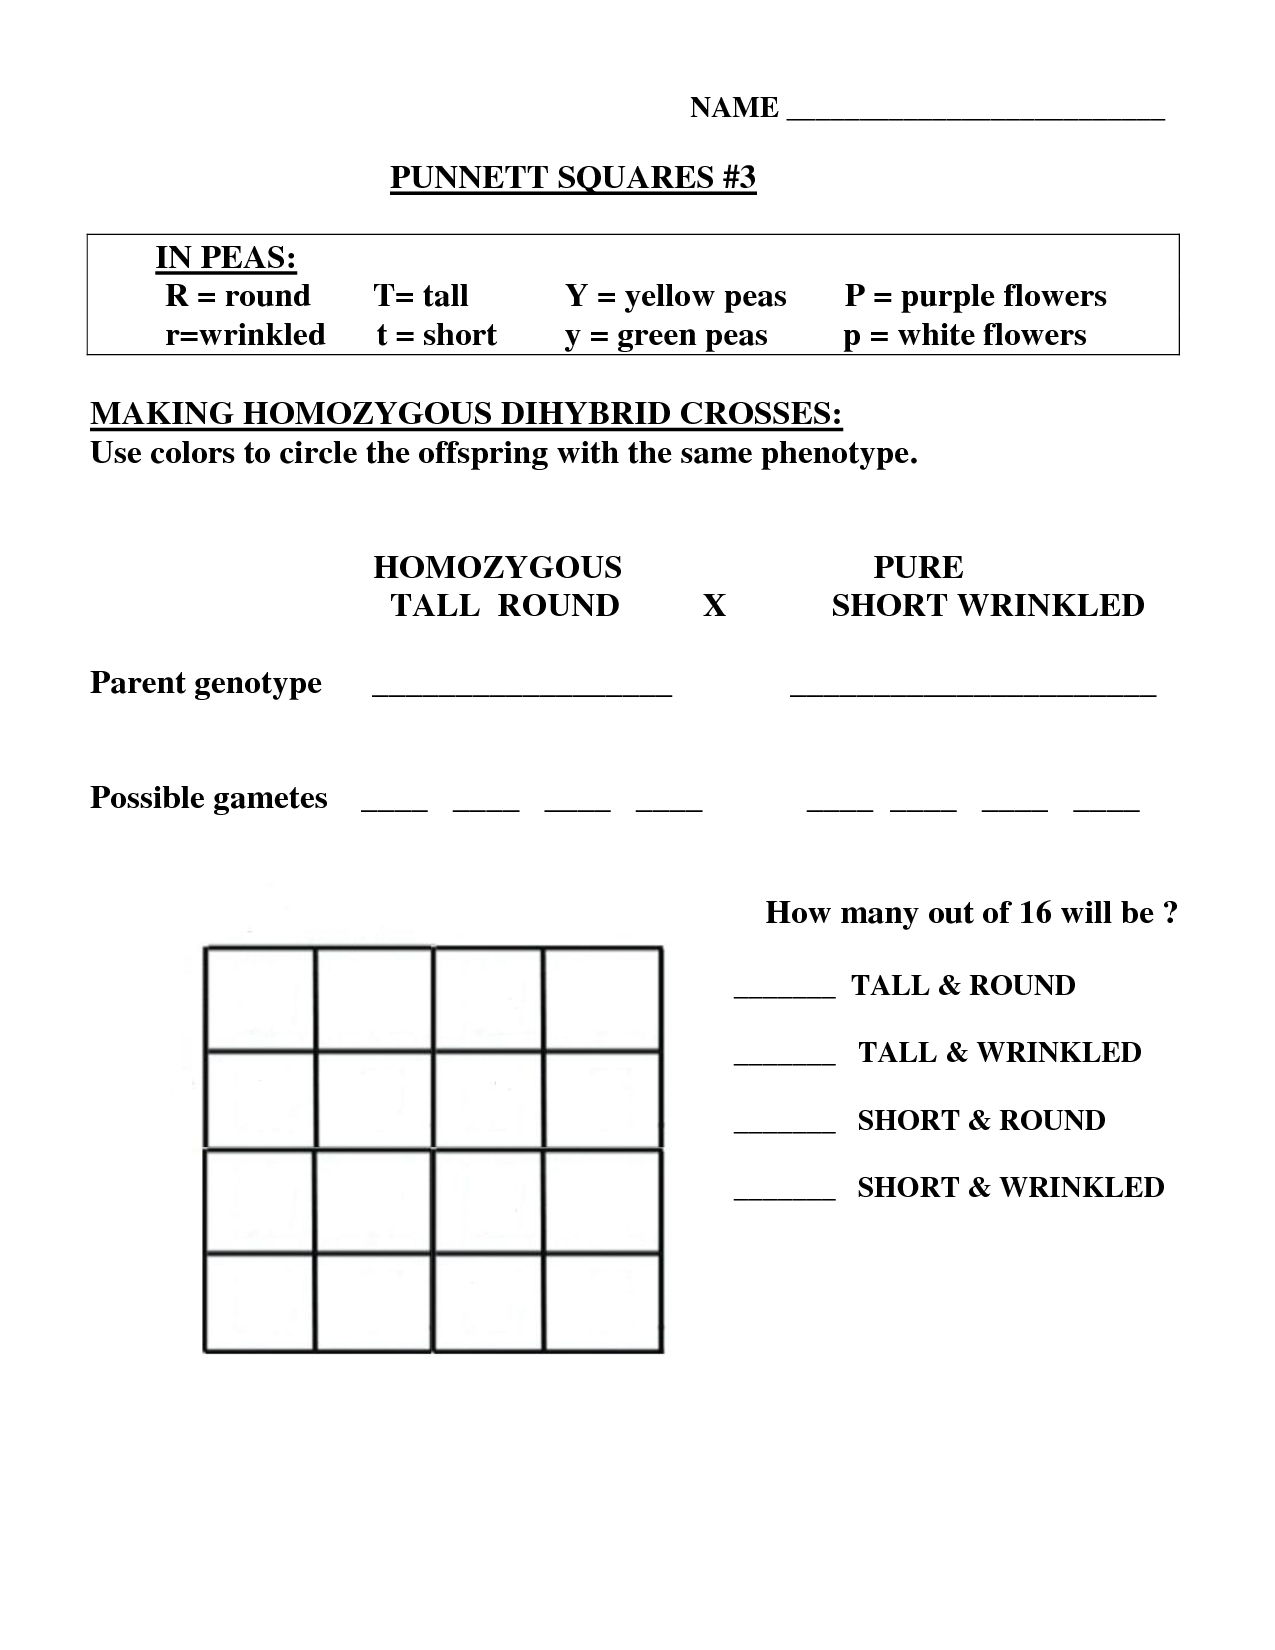 Dihybrid Cross Worksheet Answer Key In